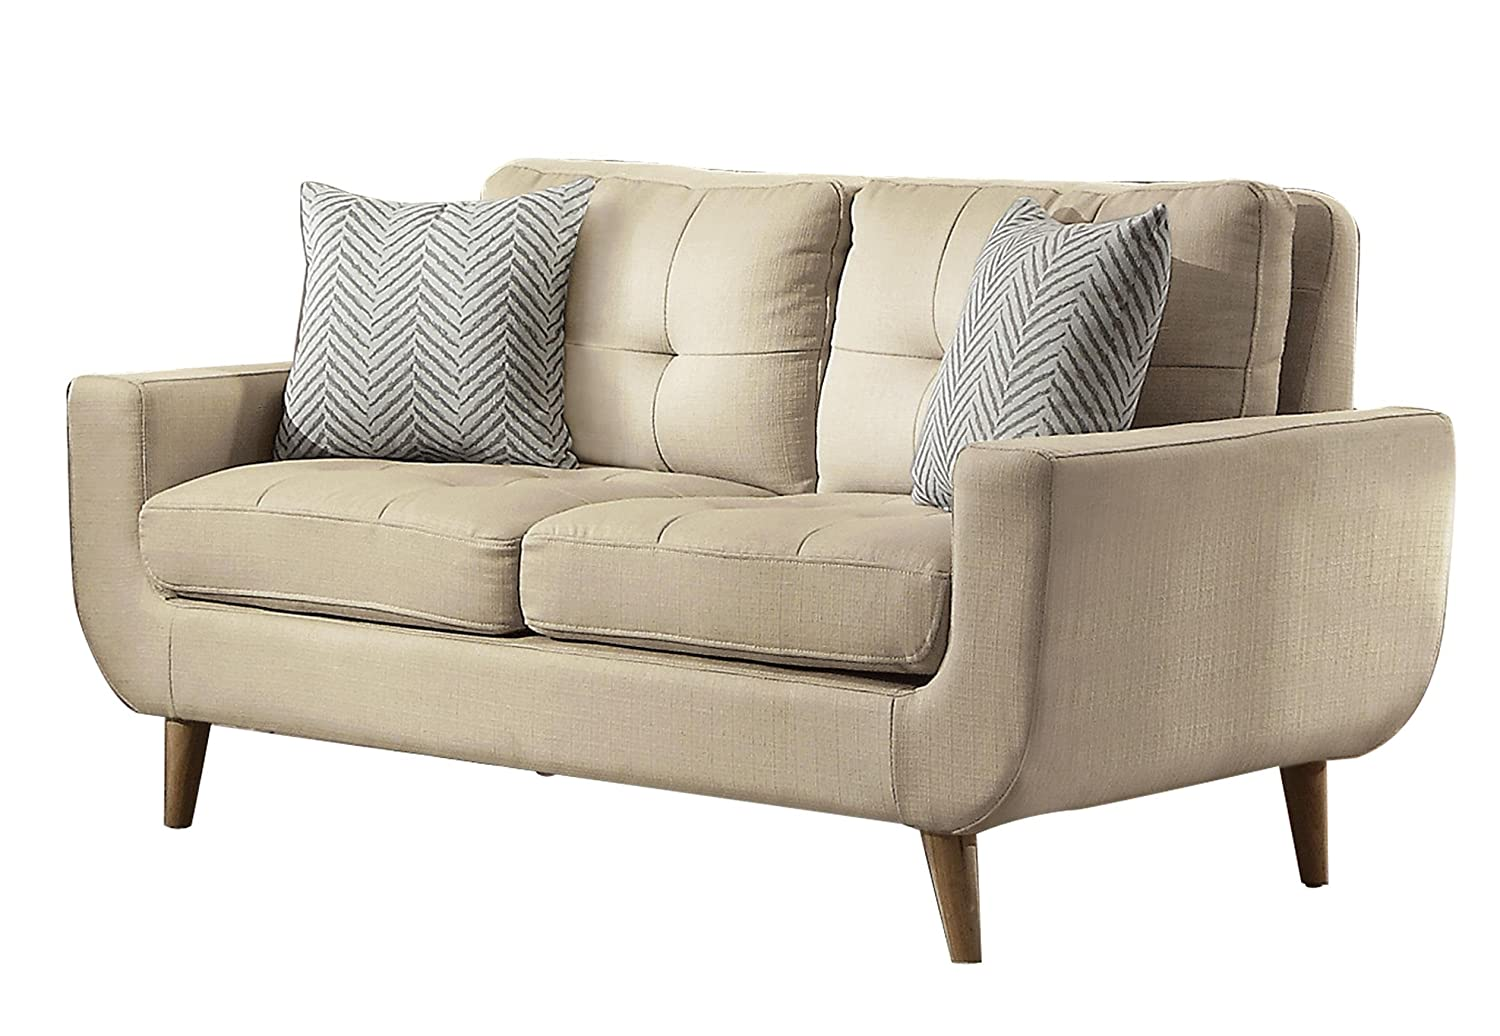 Homelegance Deryn Mid-Century Modern Loveseat with Tufted Back and Two Herringbone Throw Pillows - Beige